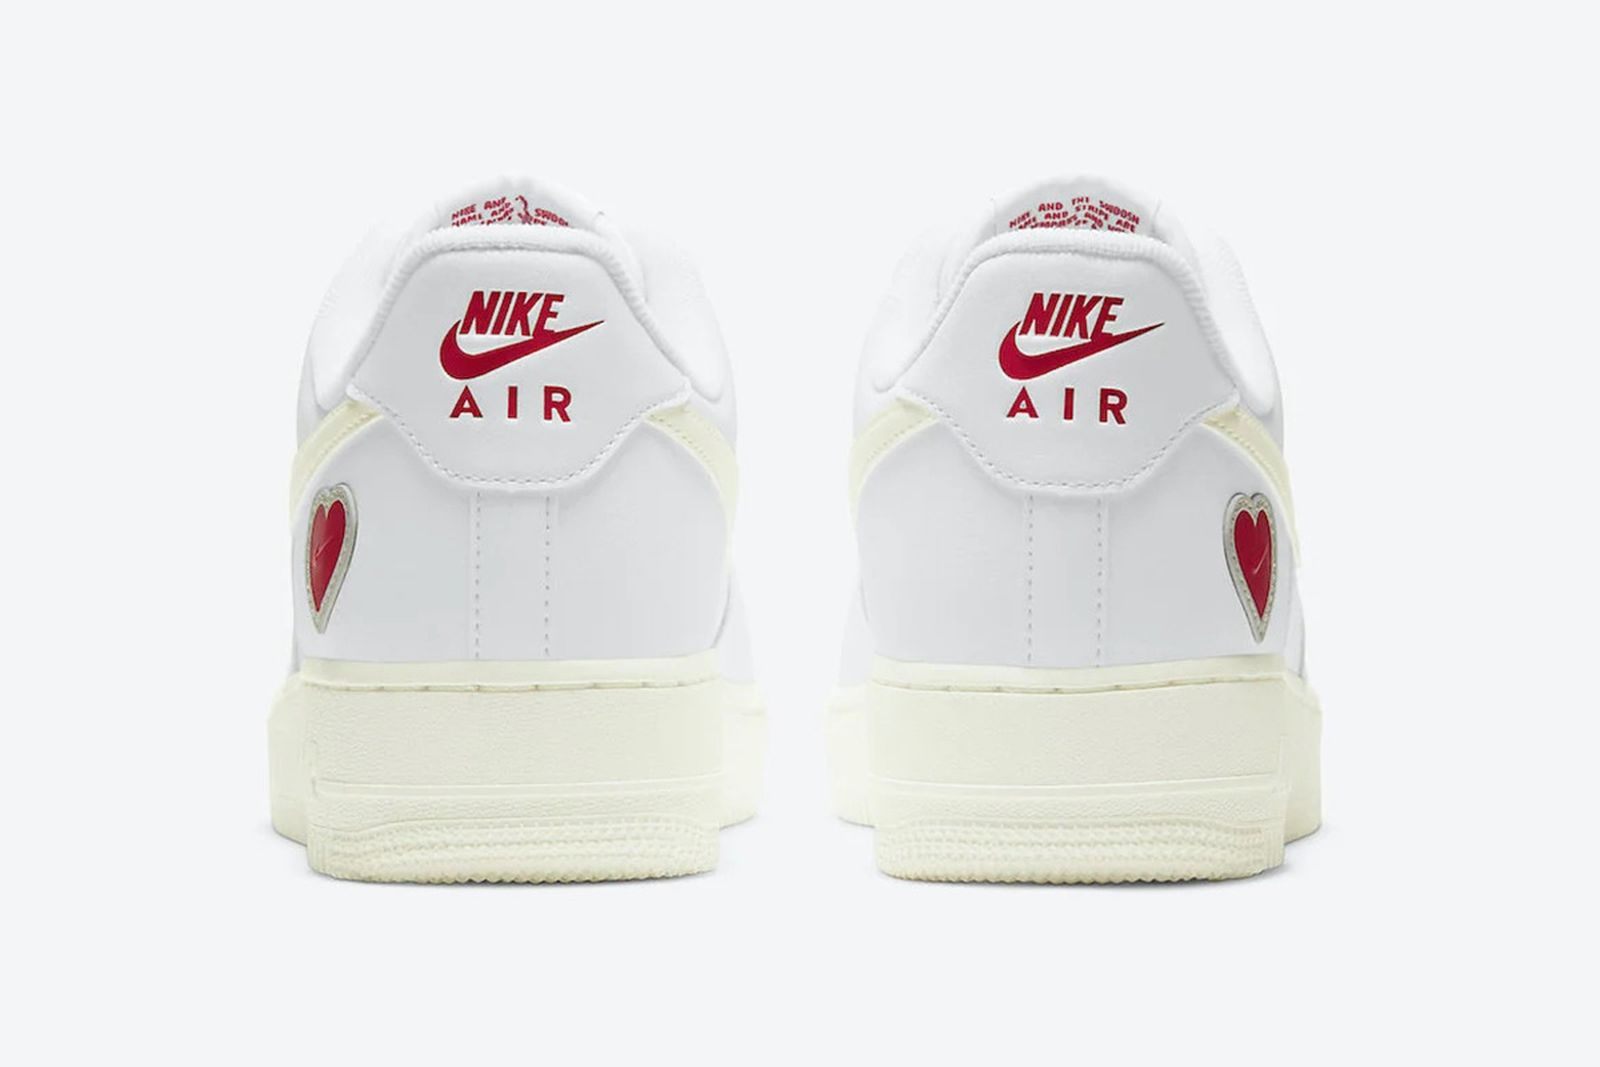 nike-air-force-1-valentines-day-2021-release-date-price-05